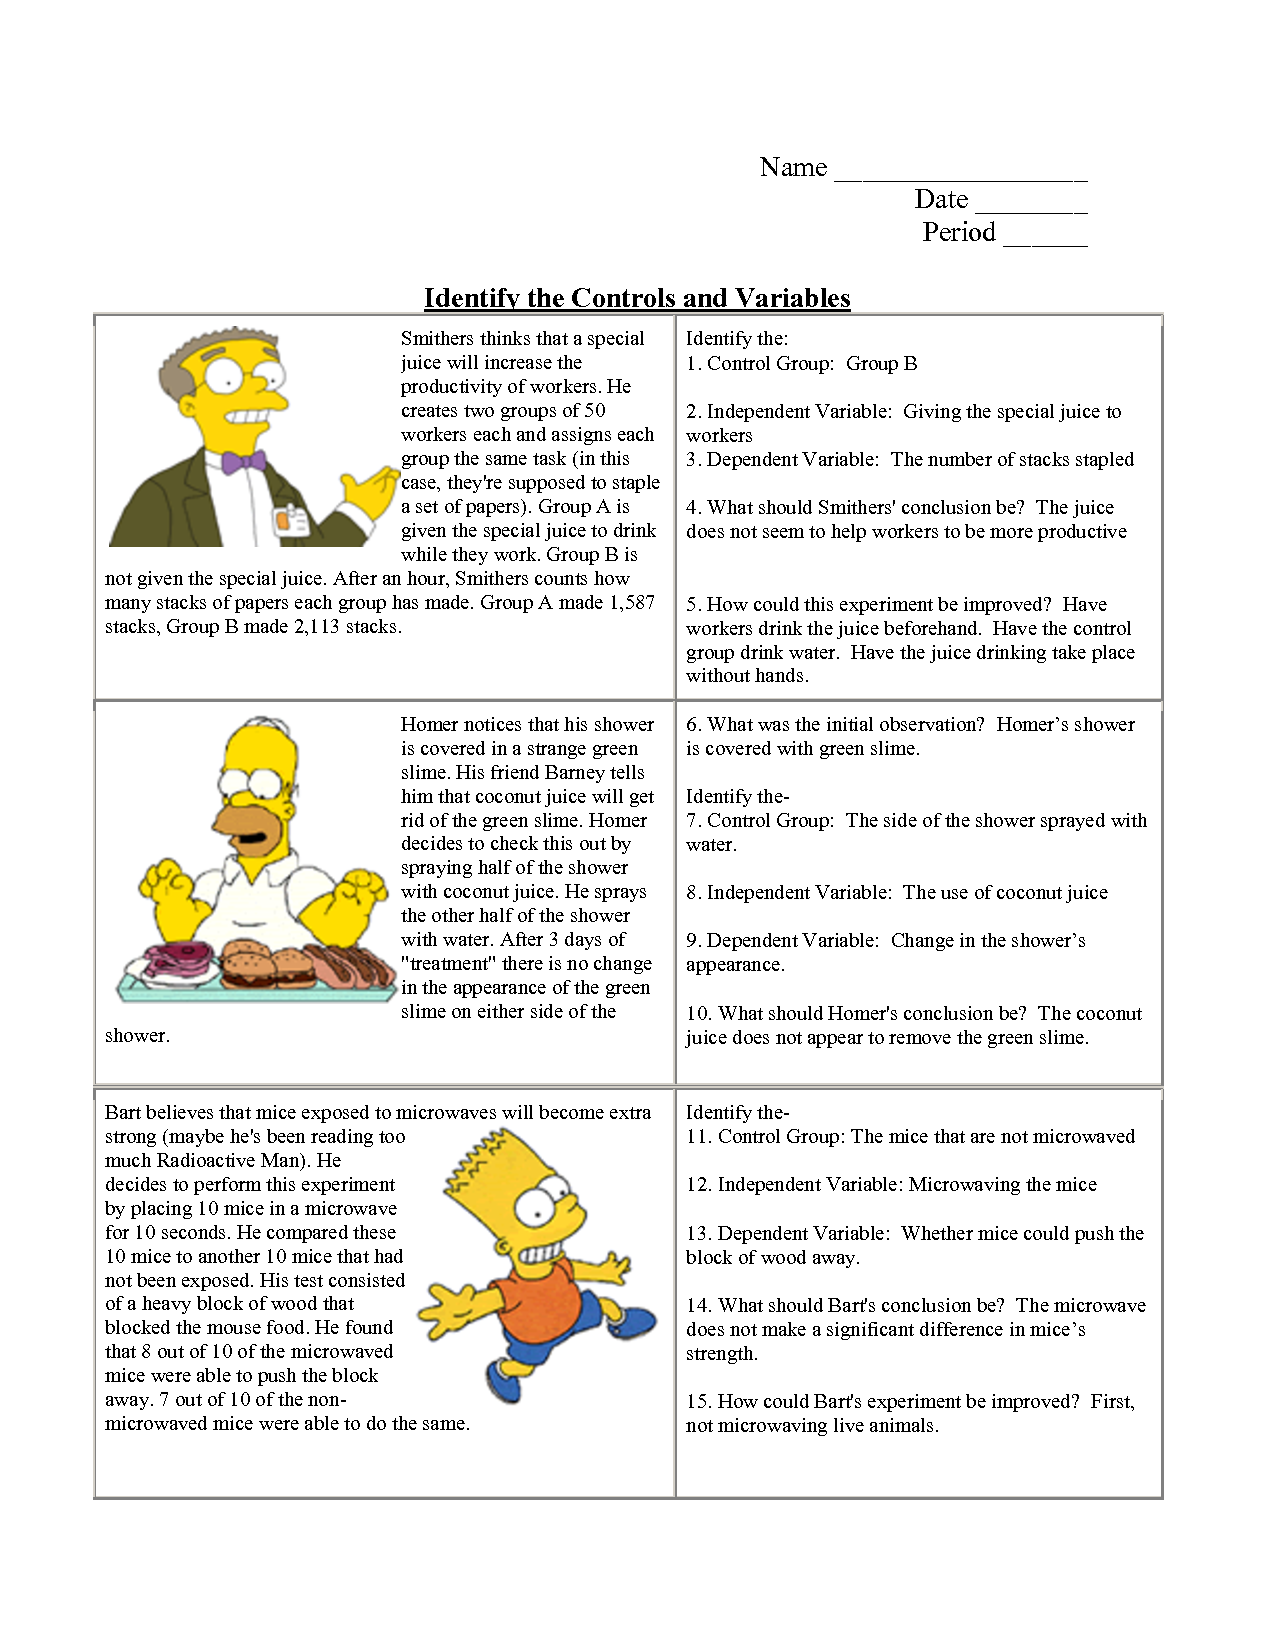 Identifying Variables Worksheet Answers Scientific Method Worksheet Scientific Method Science Worksheets